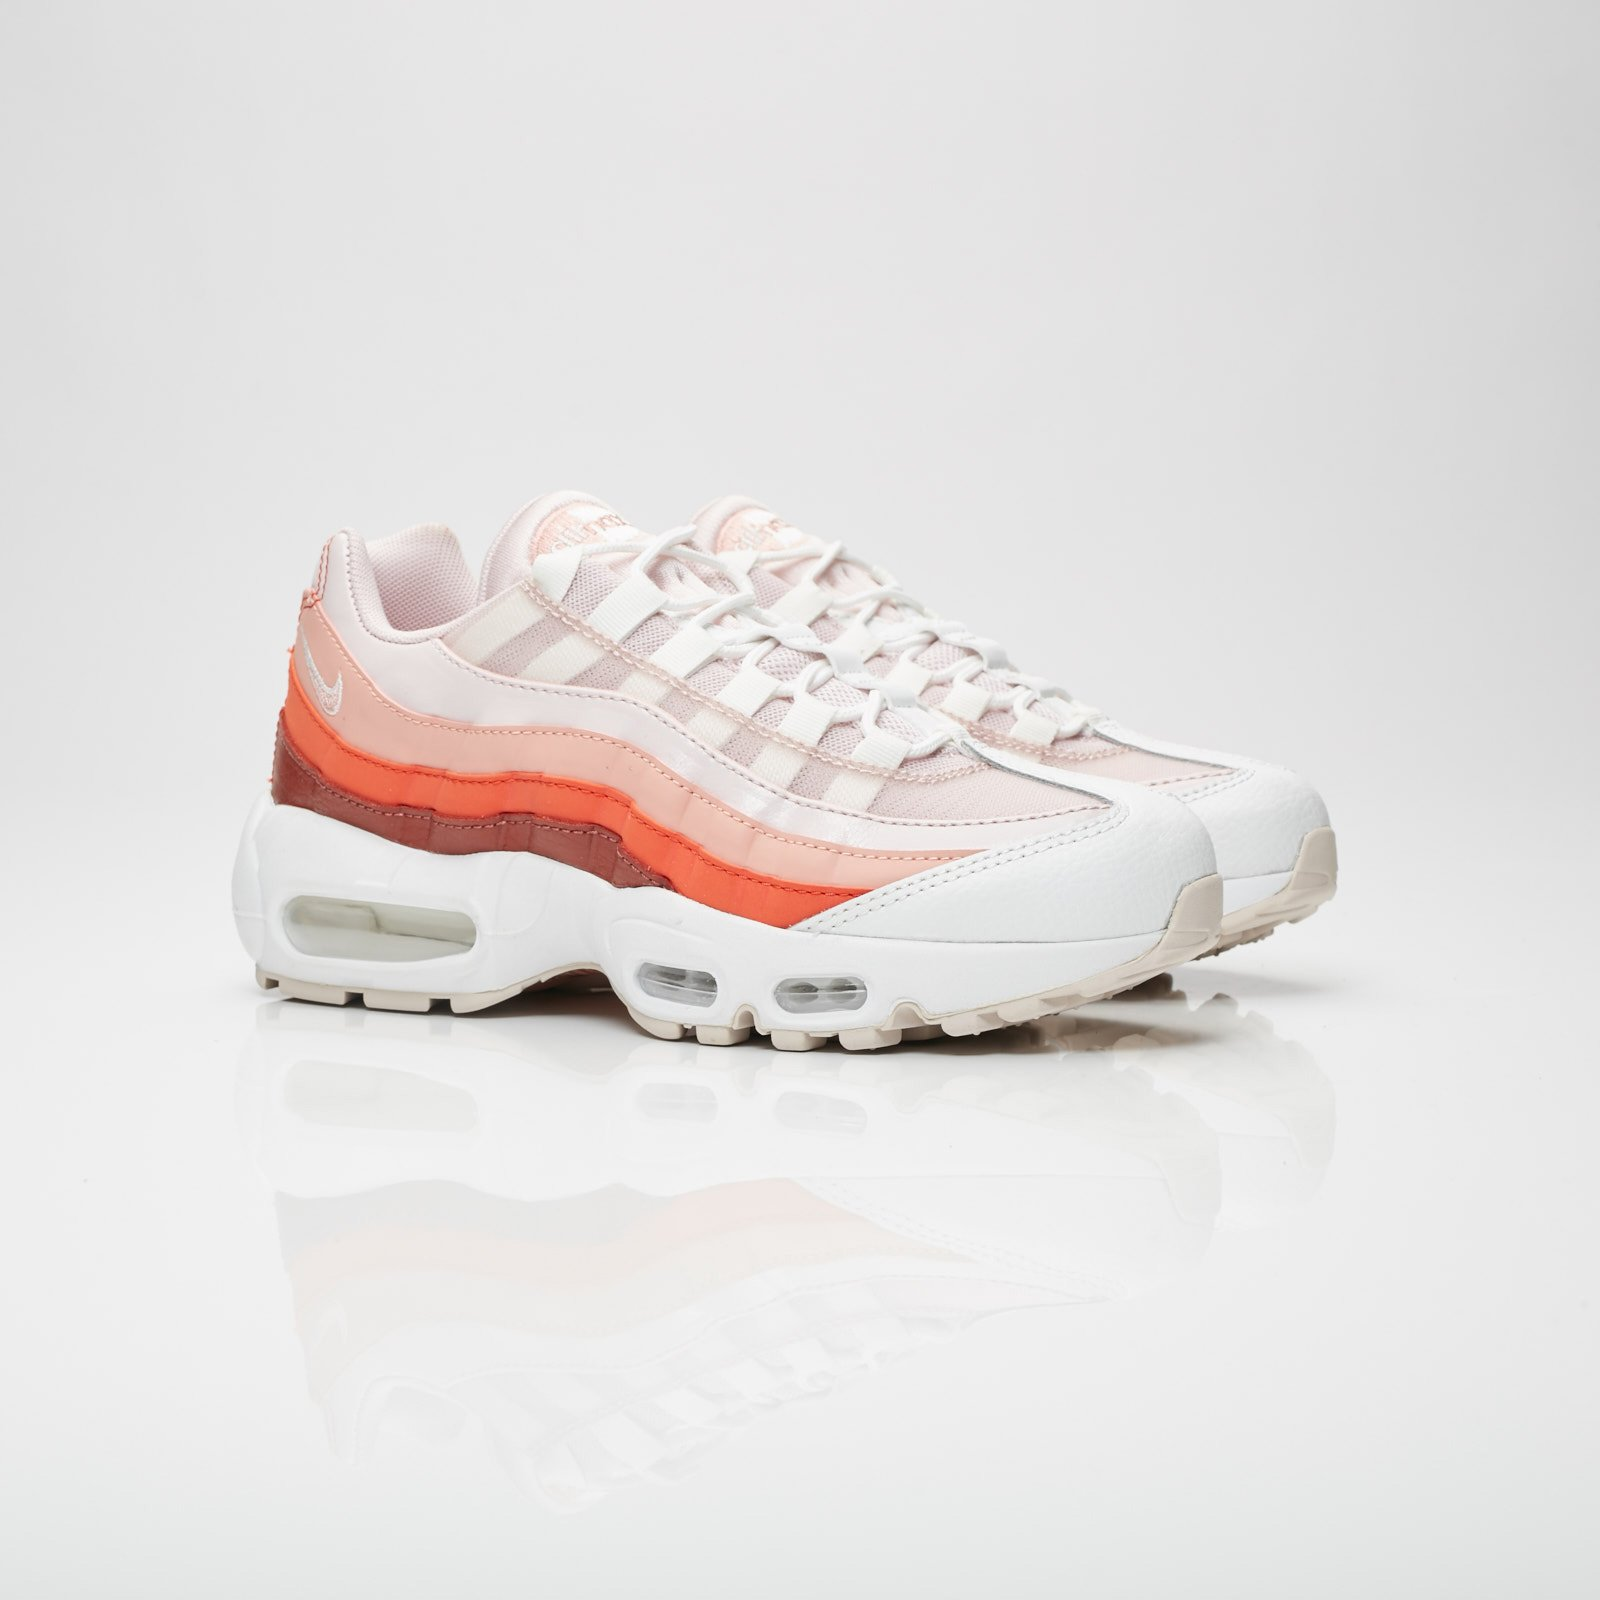 premium selection 852a0 10140 Nike Sportswear Wmns Air Max 95